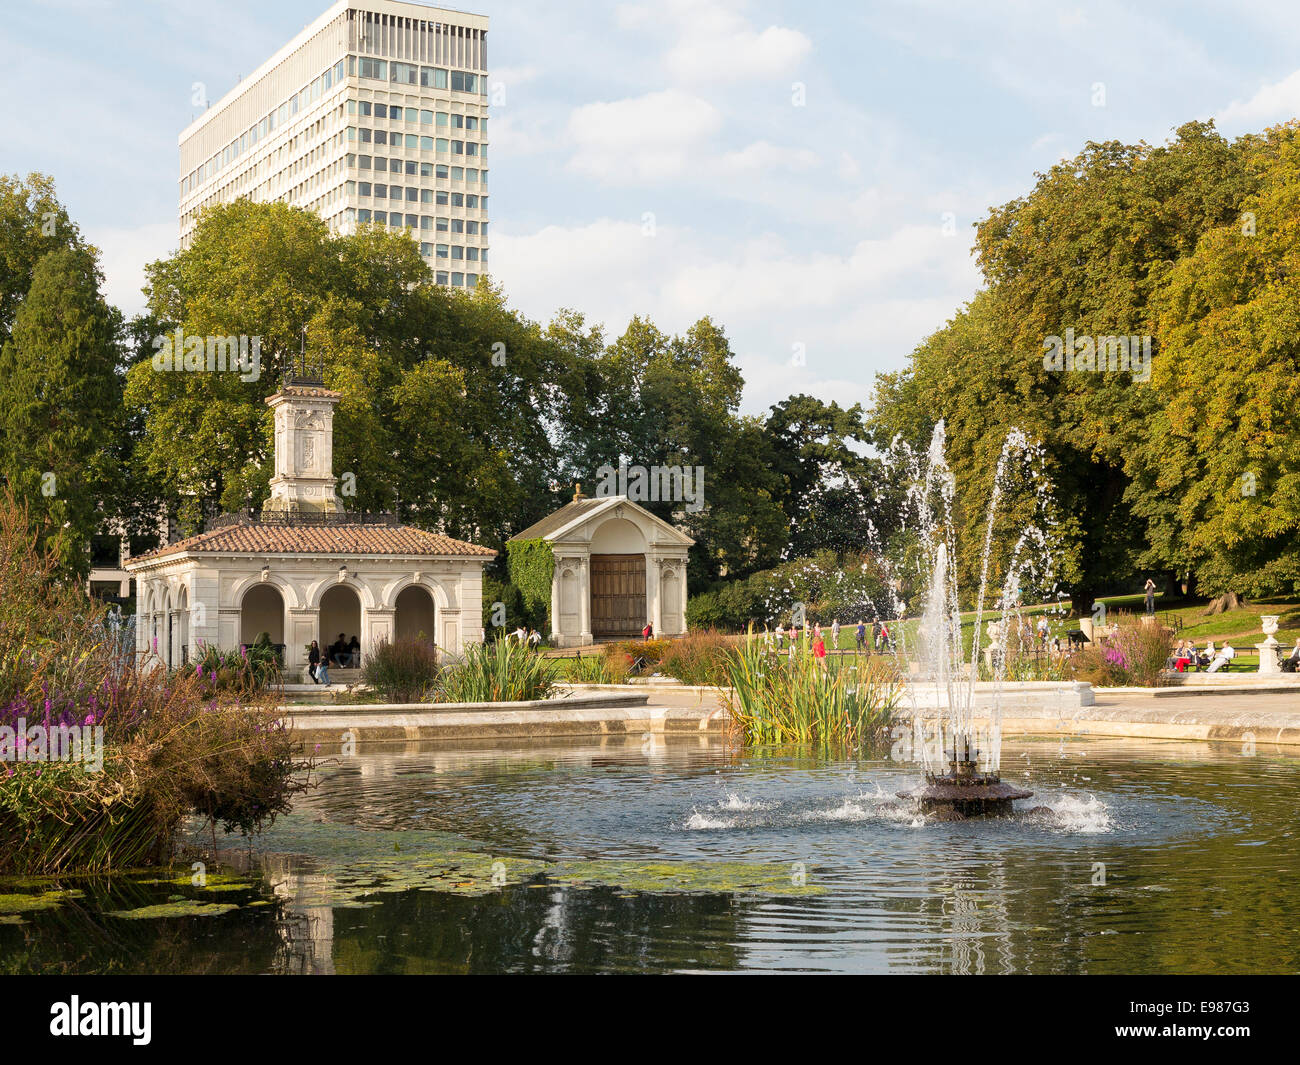 The Italian Gardens, at the end of The Sepentine Lake at